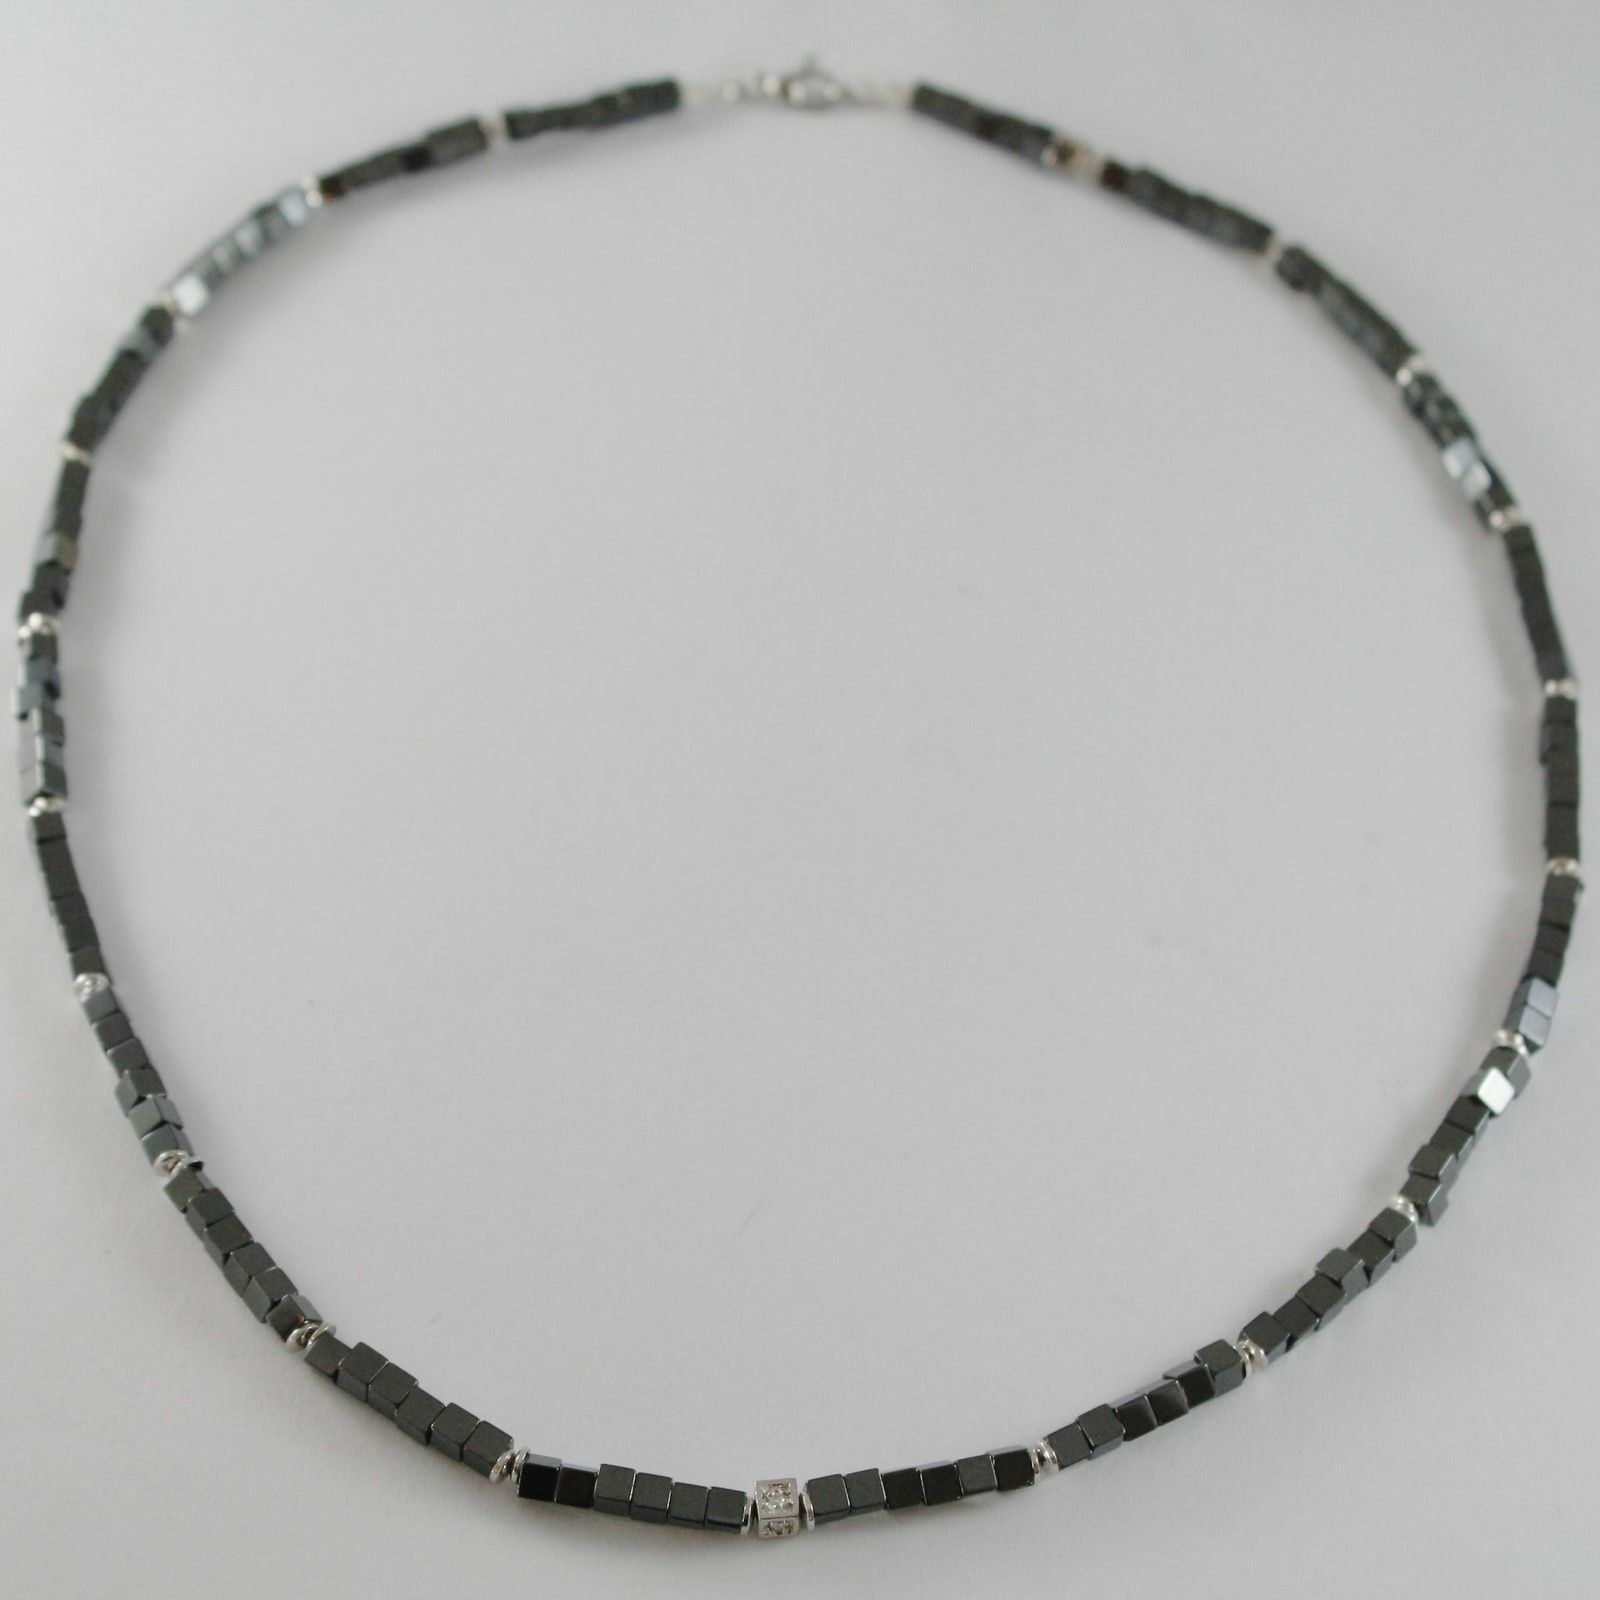 NECKLACE GIADAN 925 SILVER HEMATITE LUCID AND 8 DIAMONDS WHITE MADE IN ITALY image 1